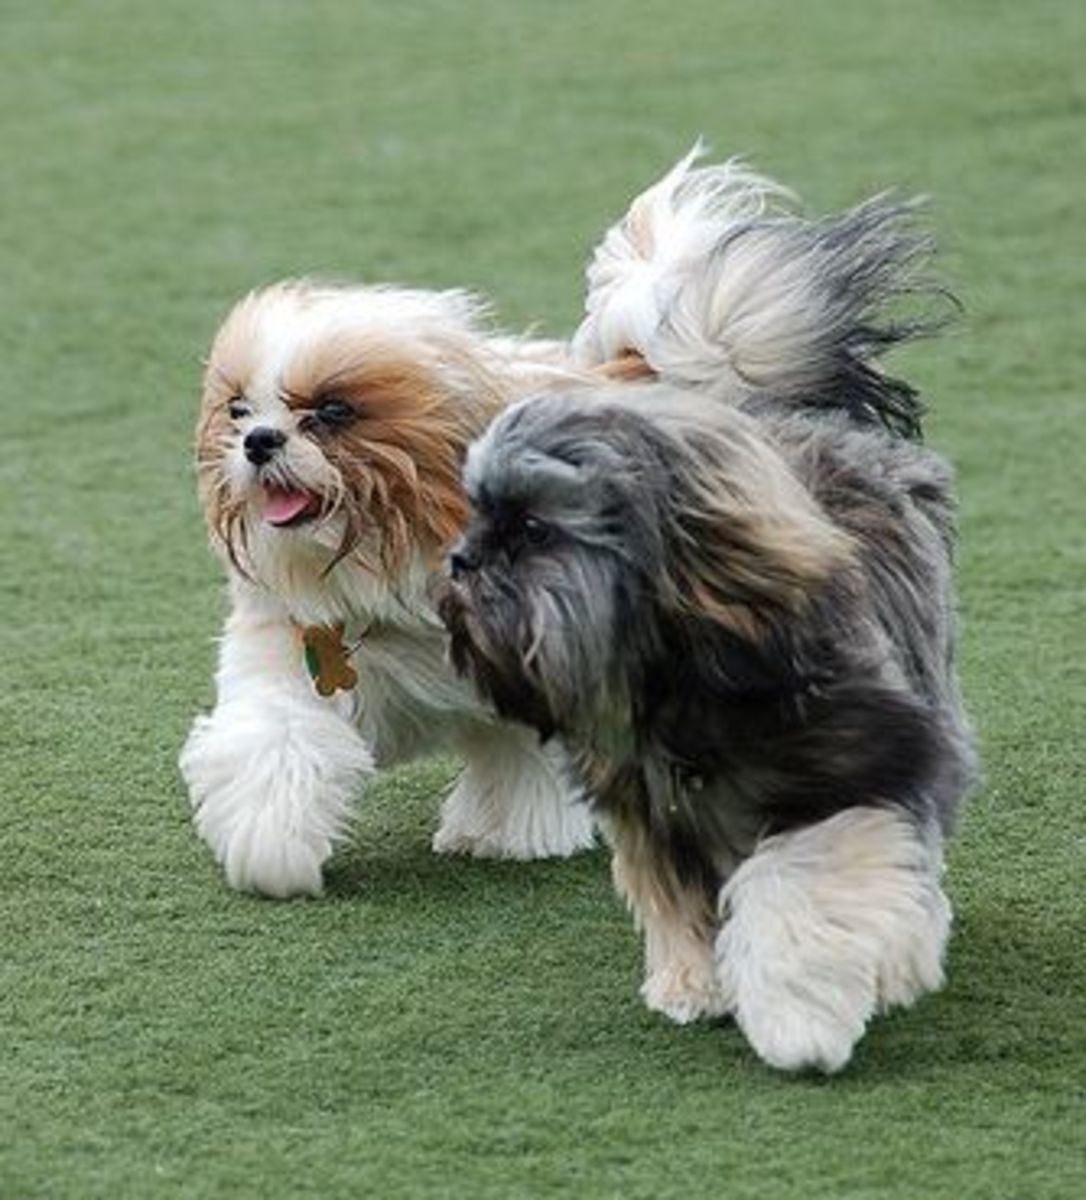 Since Shih Tzu do not shed much, they have long hair and look good when brushed daily.